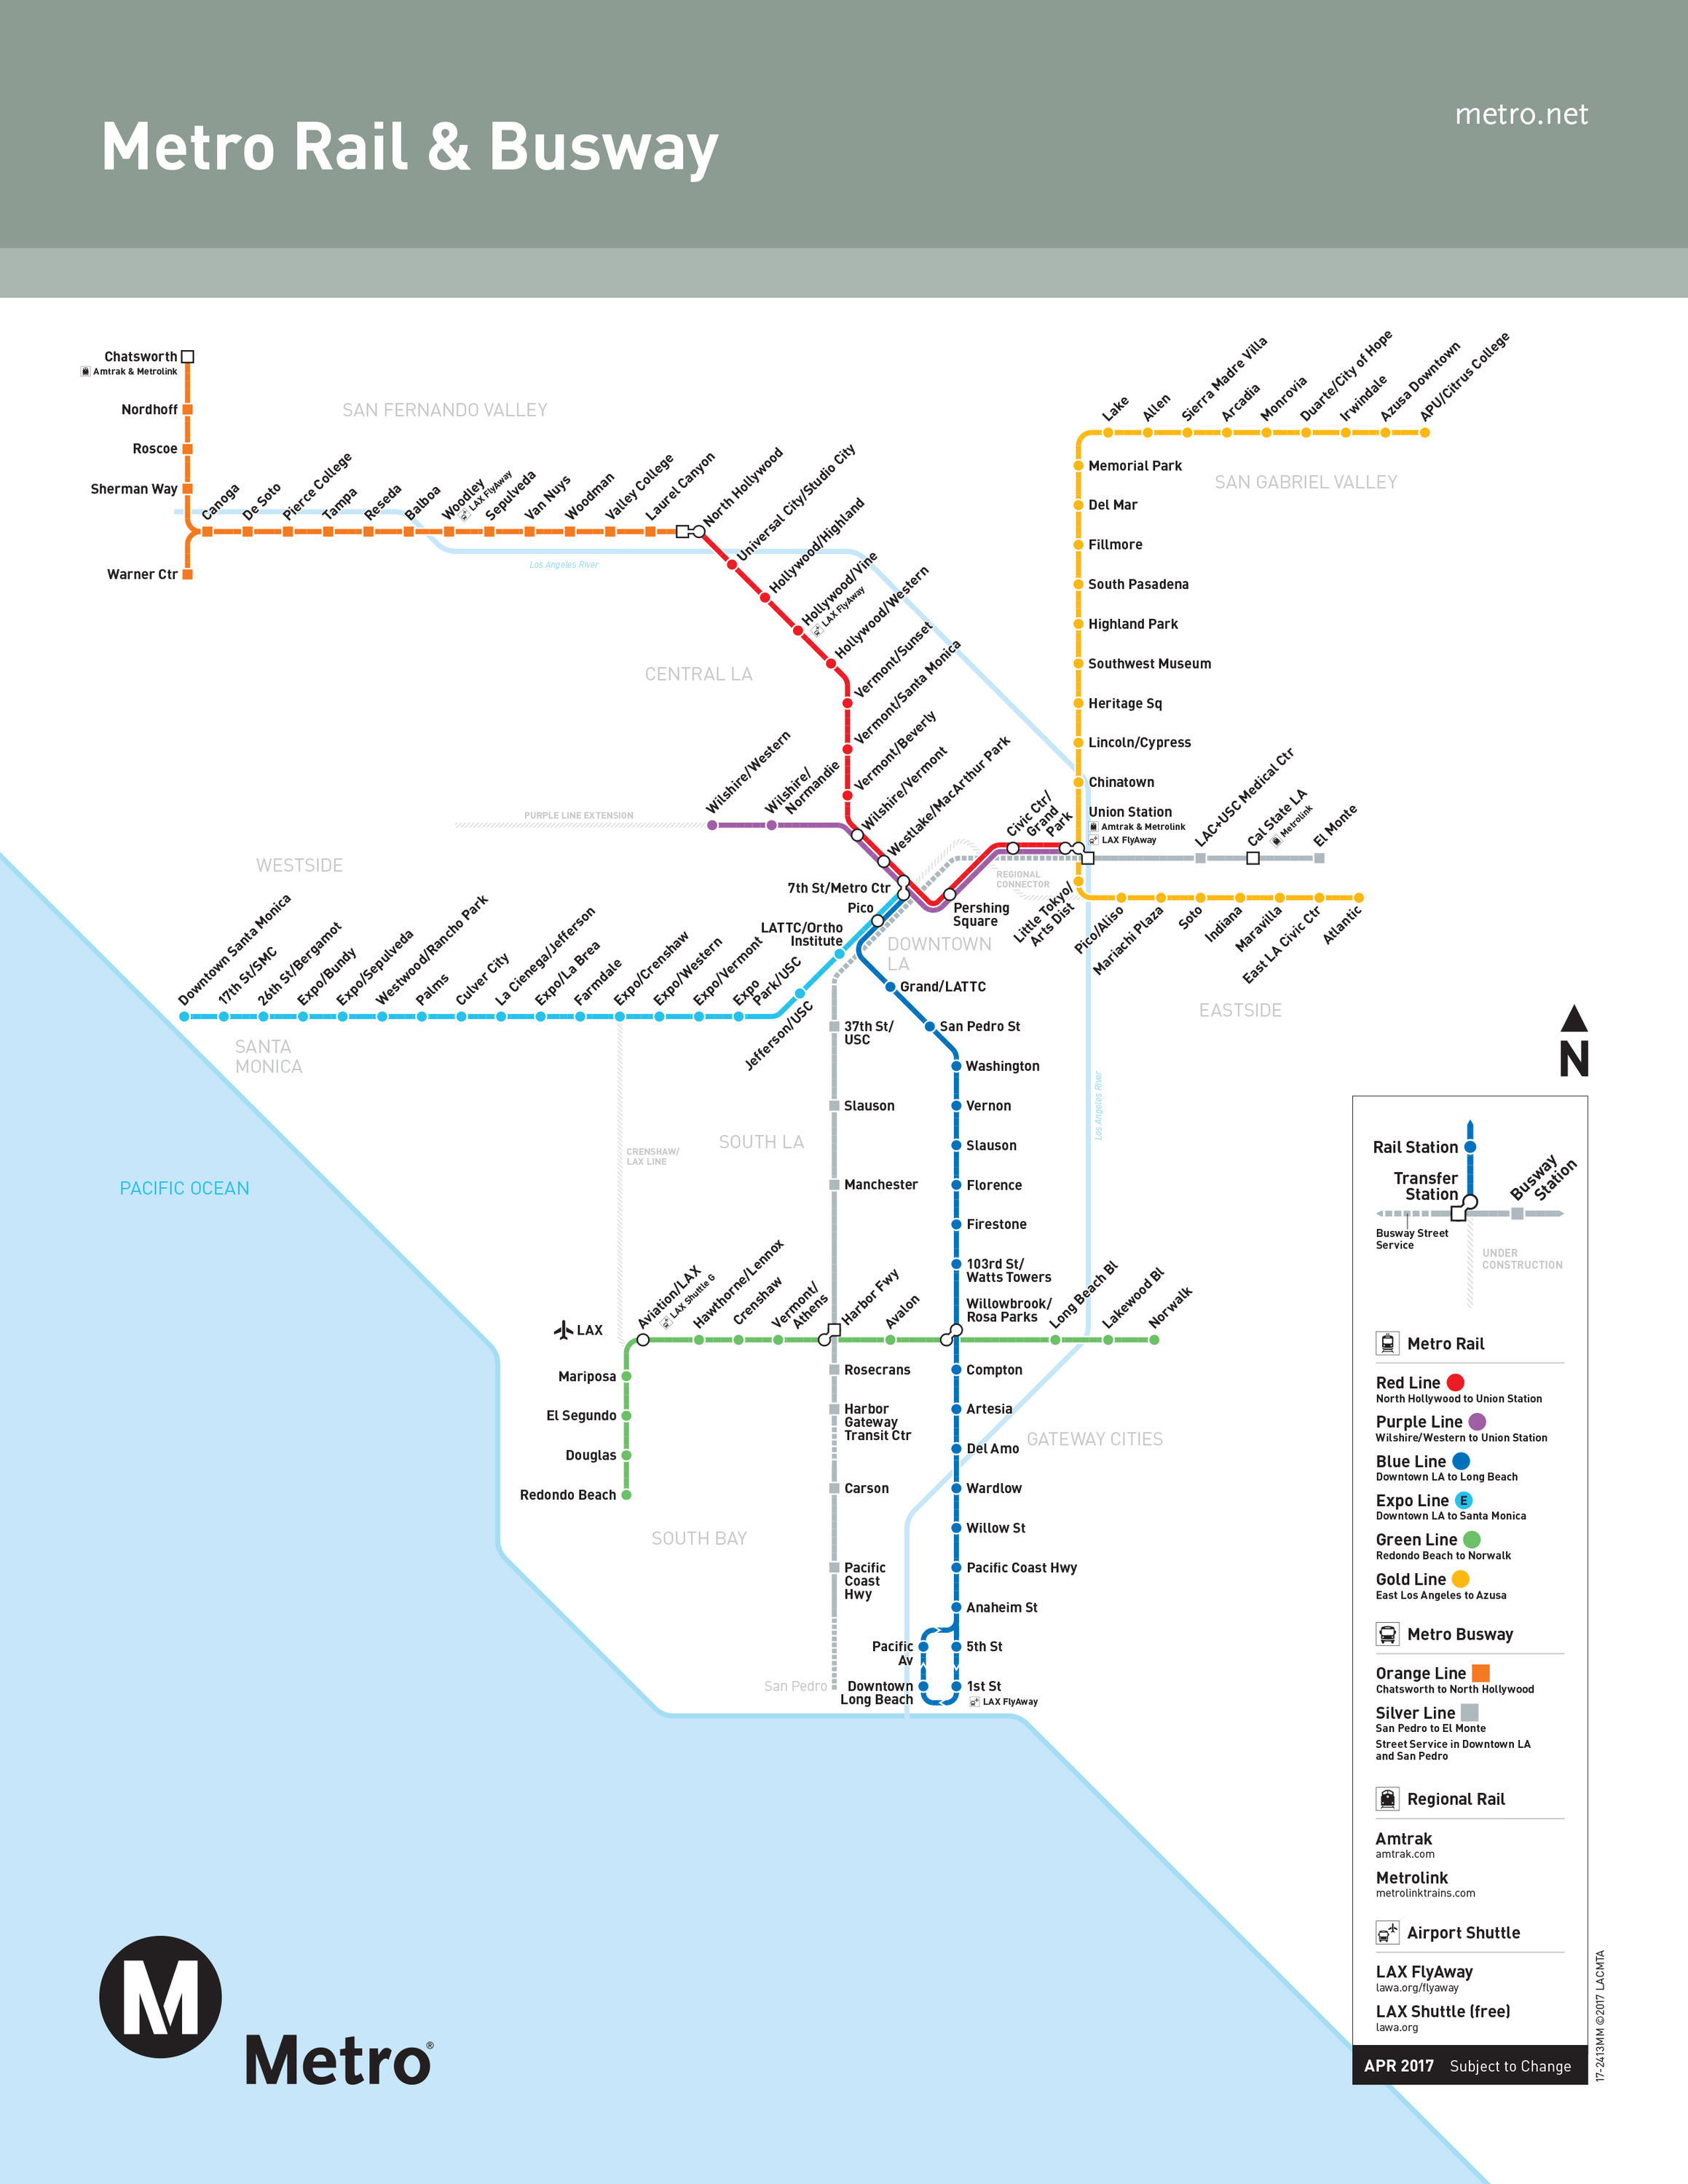 A Los Angeles Metro Guide For Getting Around L.a. Car-Free - Southern California Metrolink Map